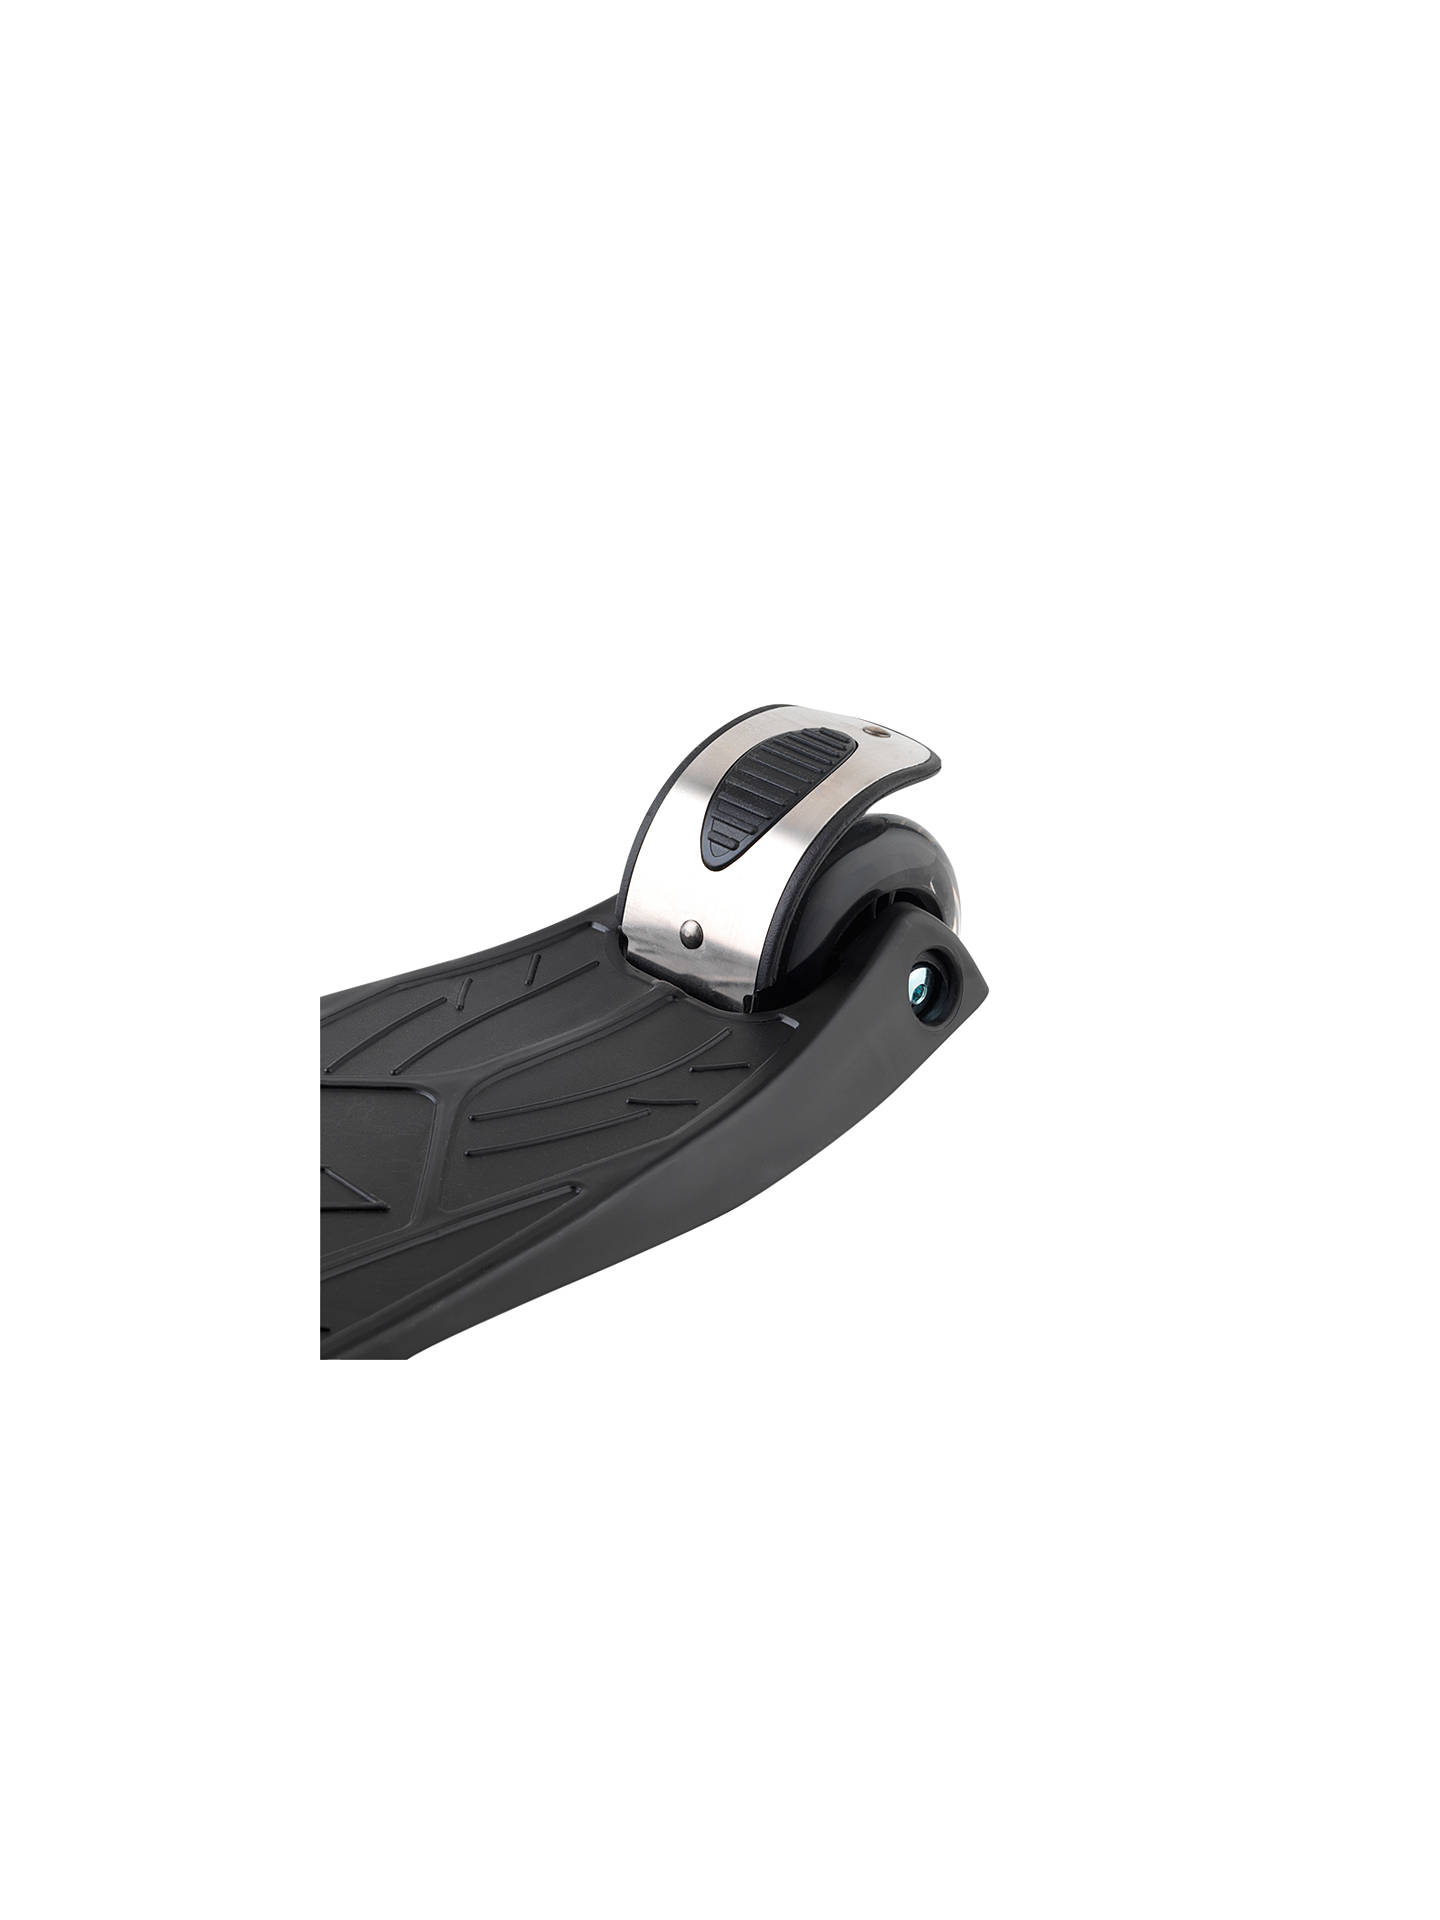 Buy Micro Scooters Maxi Micro Scooter, Black Online at johnlewis.com